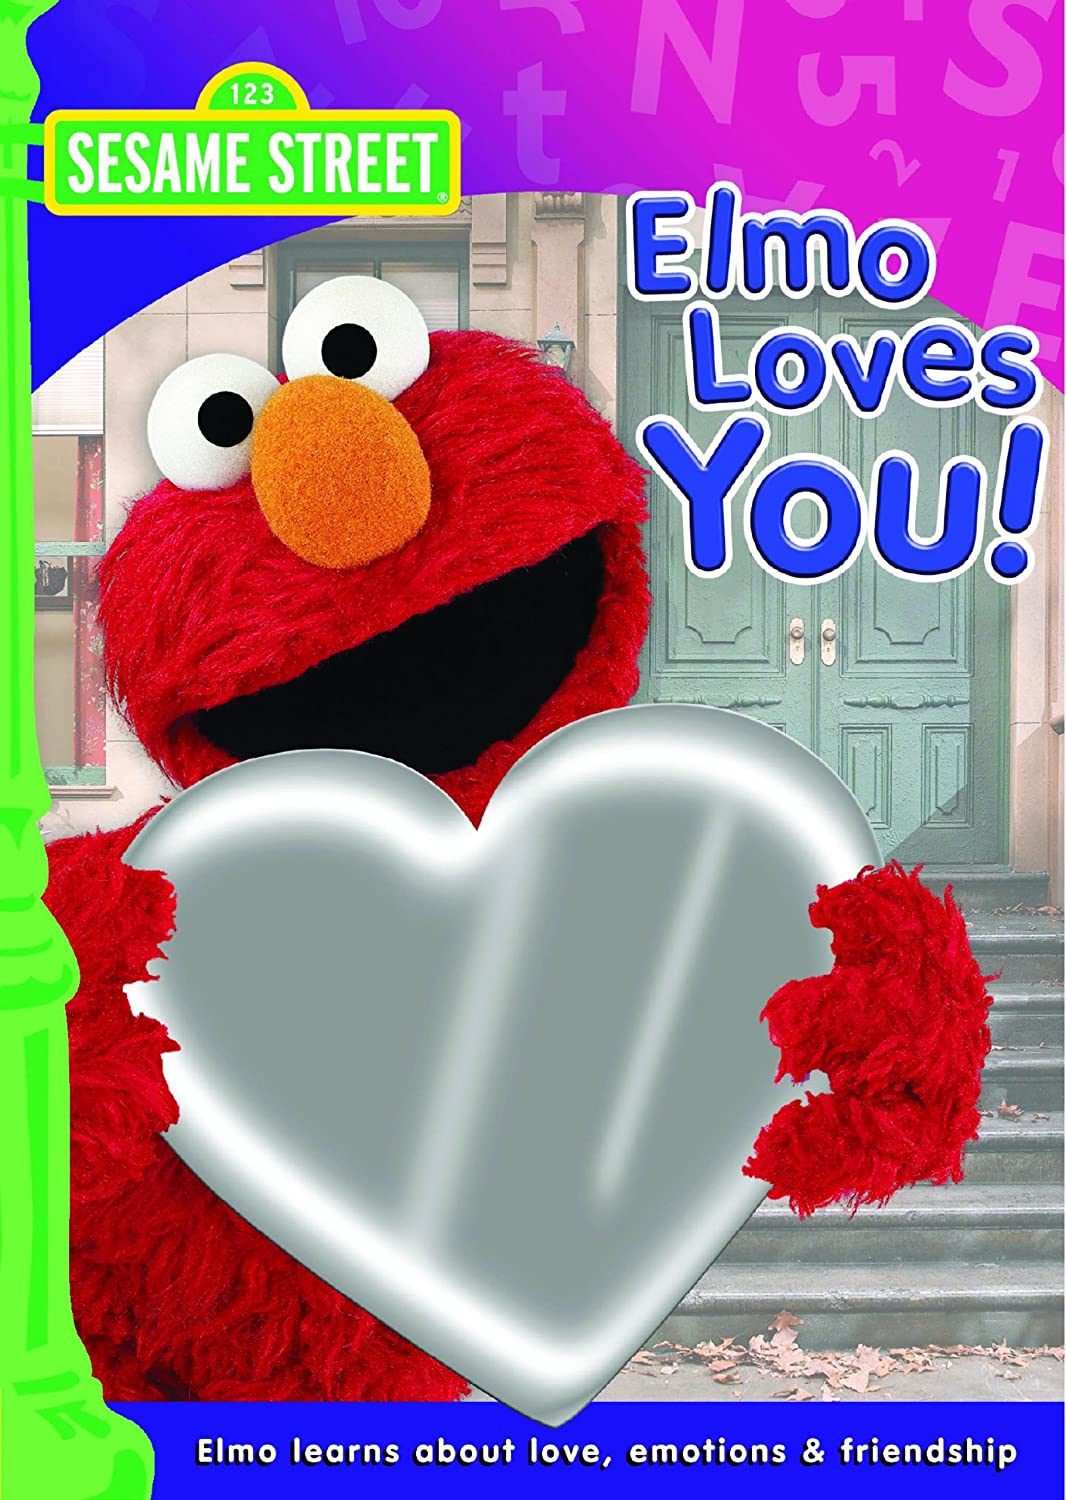 http://www.amazon.com/Elmo-Loves-You-Kevin-Clash/dp/B001H5X6Q2